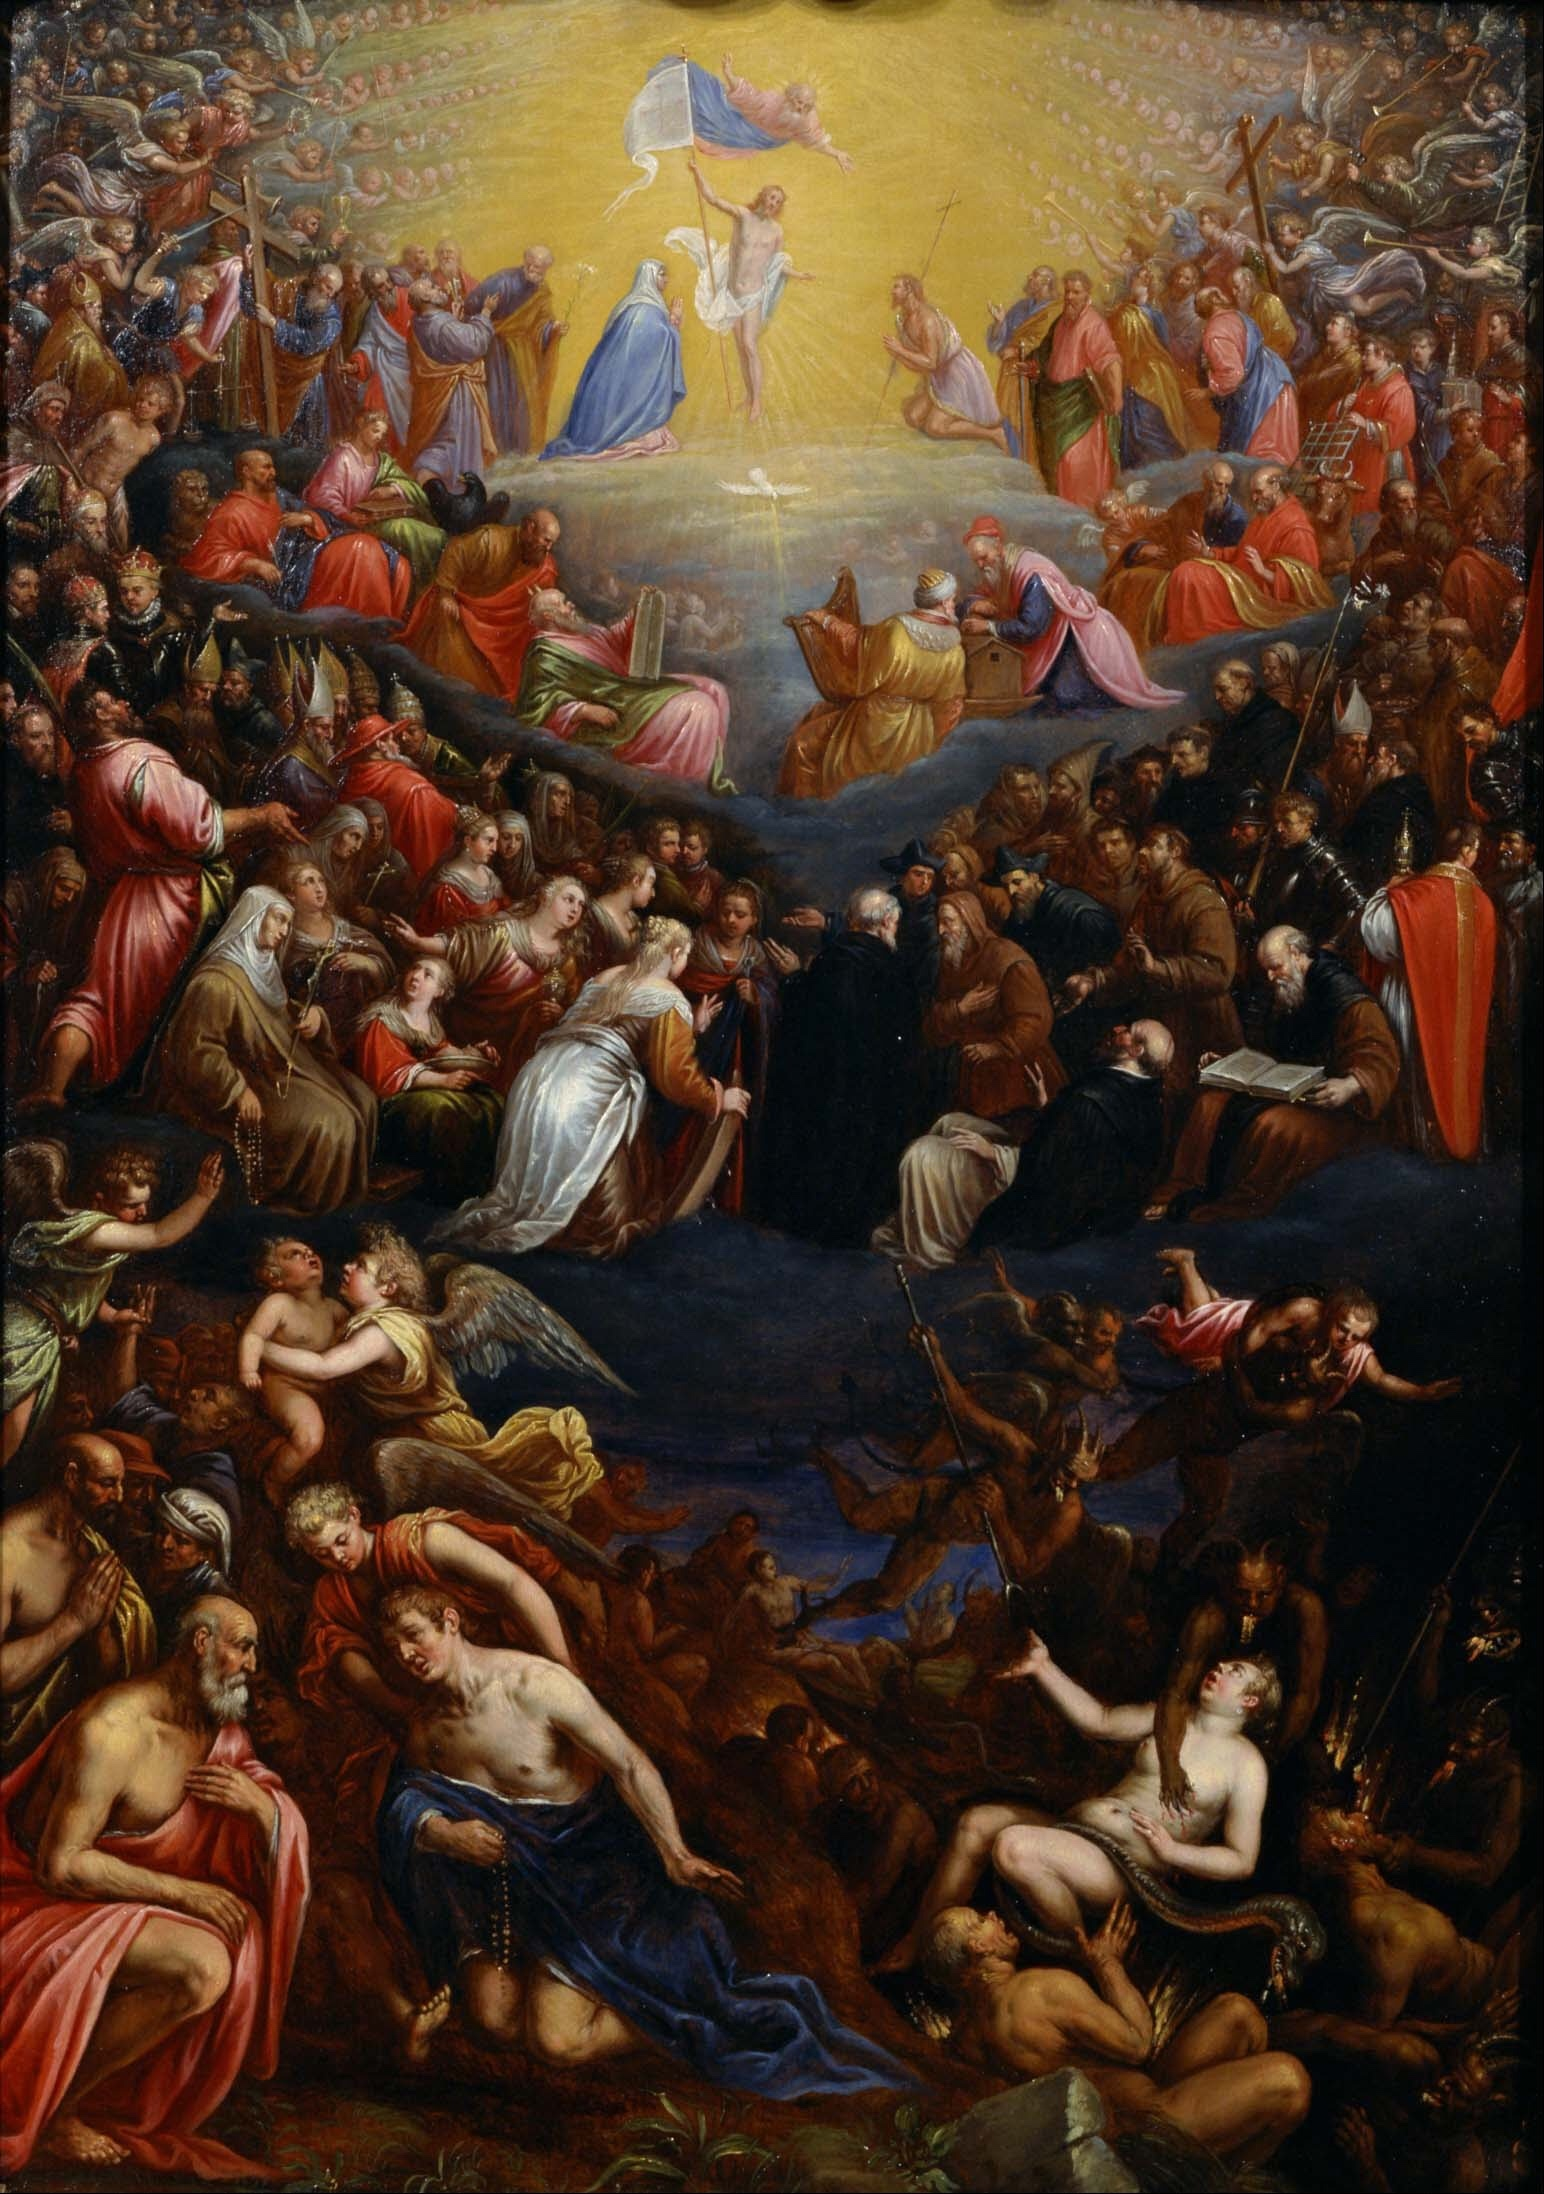 Leandro Bassano - The Last Judgement - Google Art Project. Circa: 1595. This work is in the public domain. {{PD}}